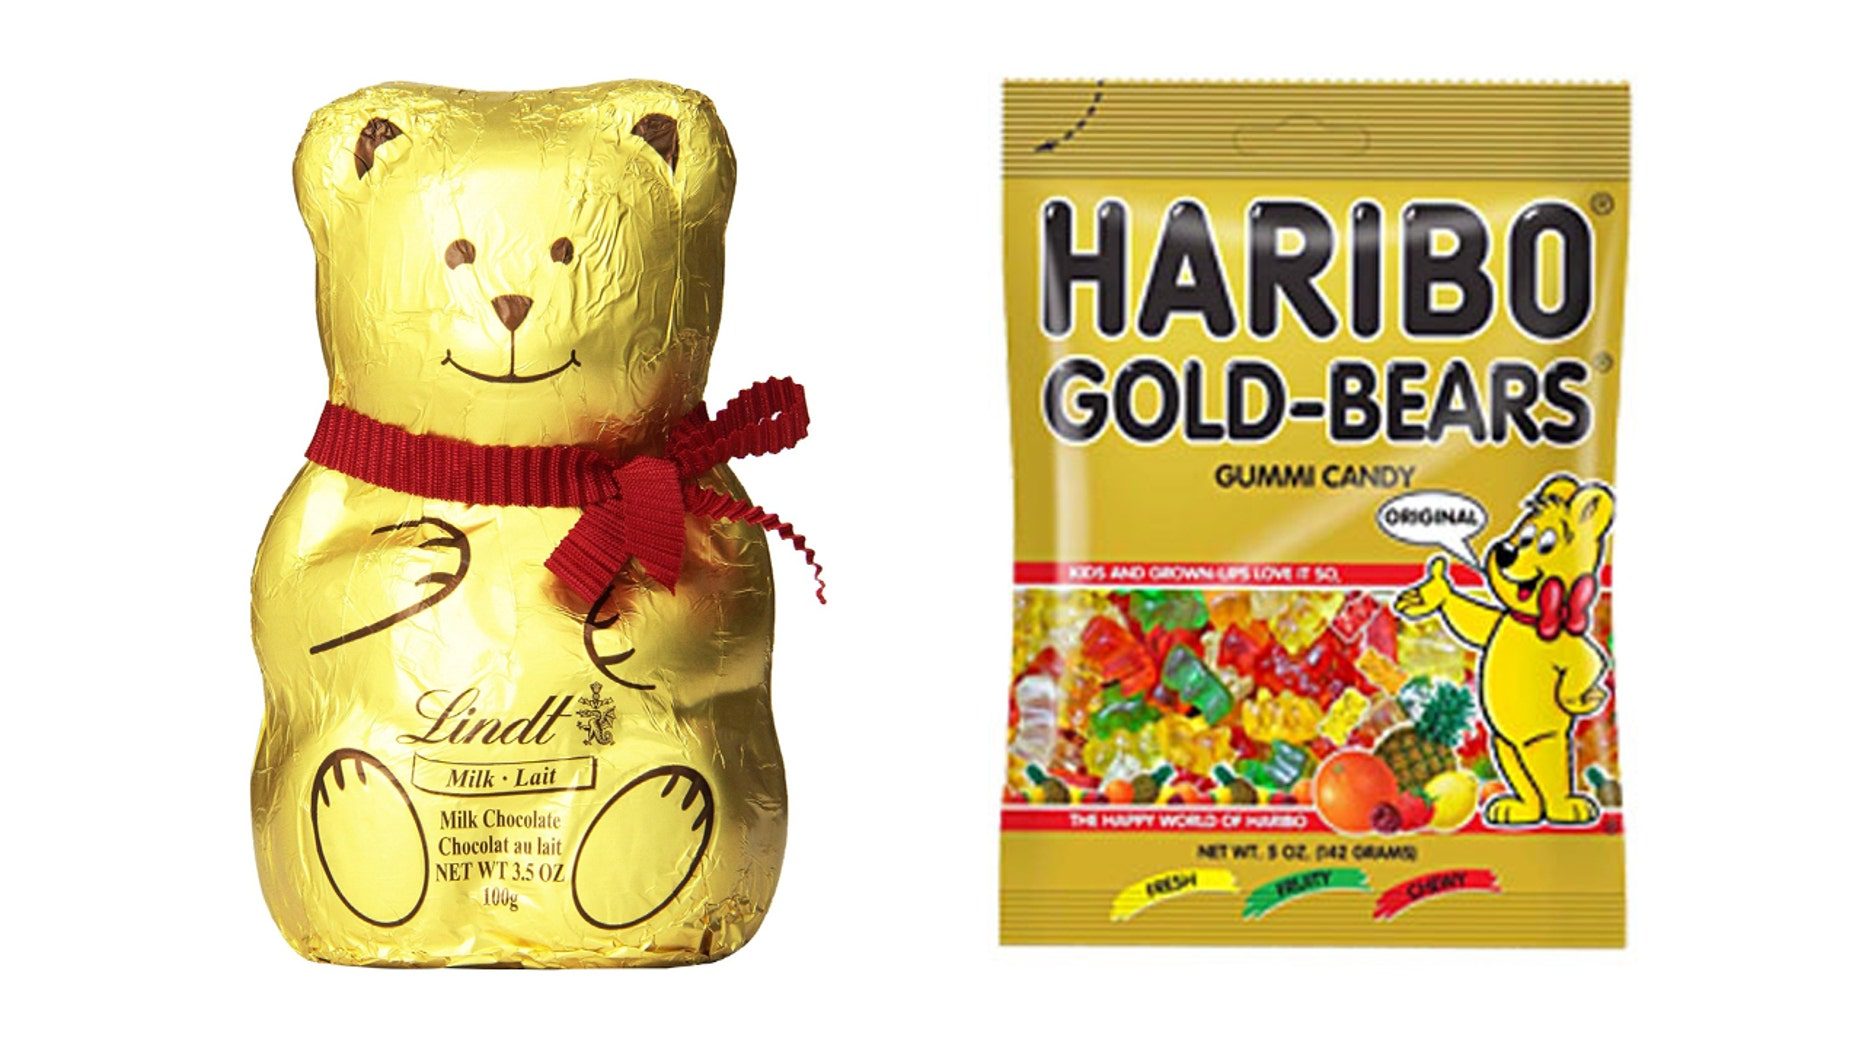 Haribo sued Lindt over its similar bear imagery.